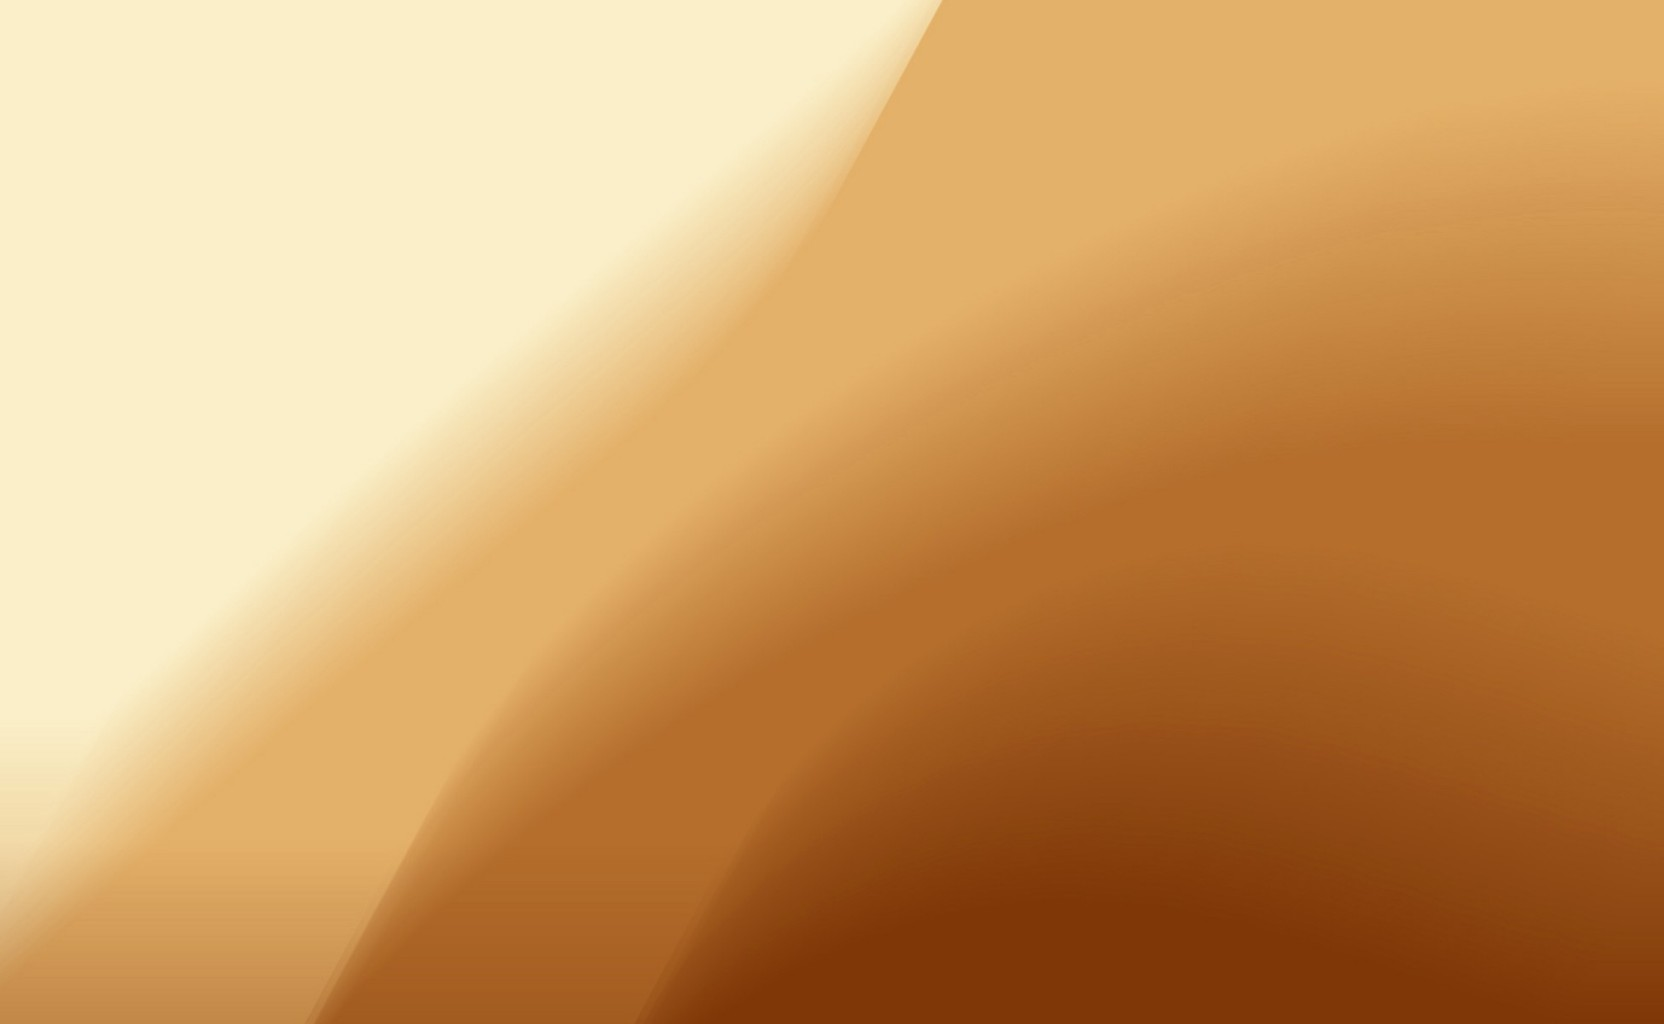 abstract-orange-white-1950x1200